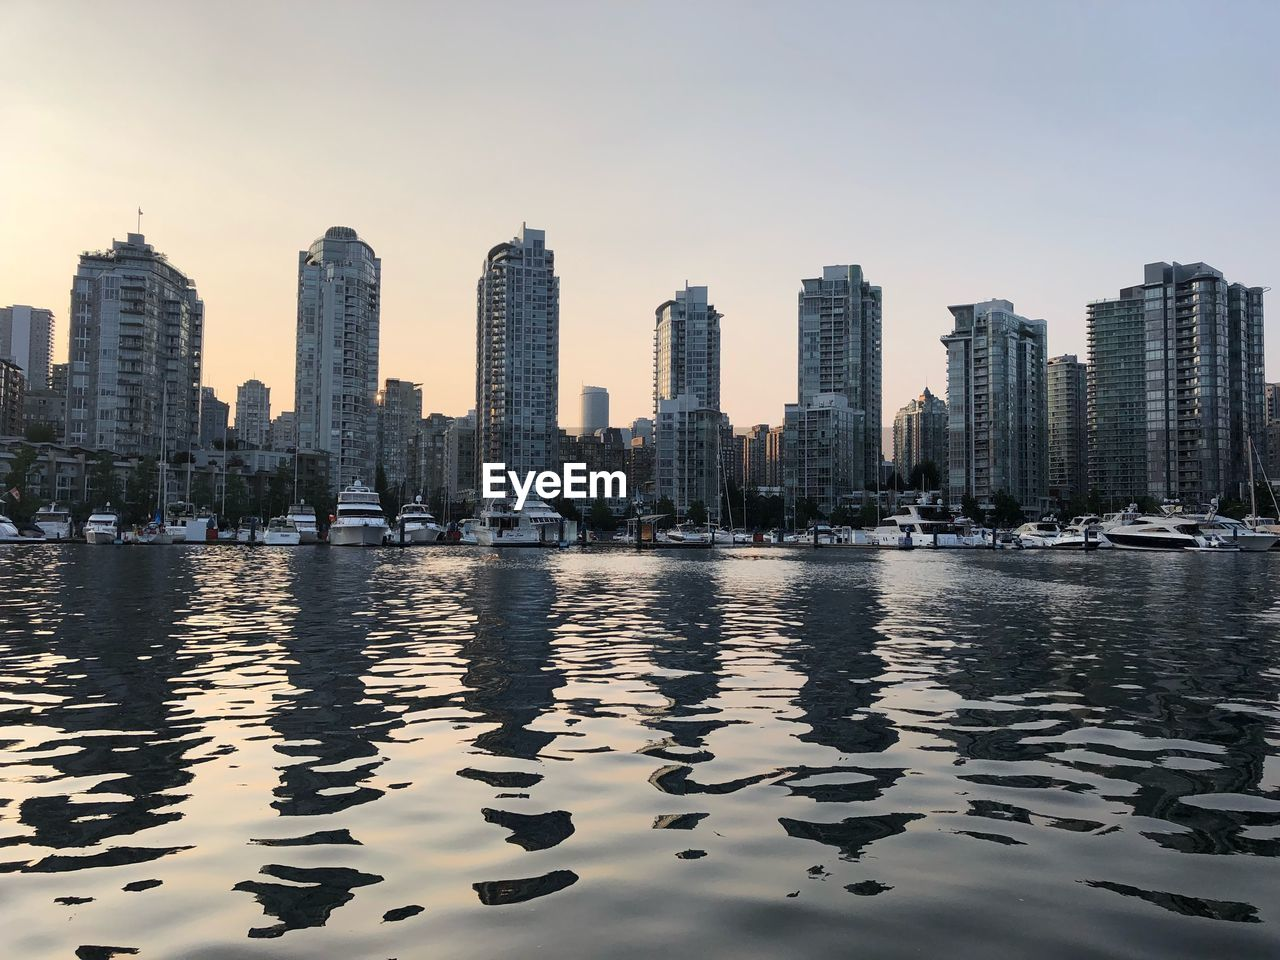 Scenic View Of River And Buildings Against Sky In City